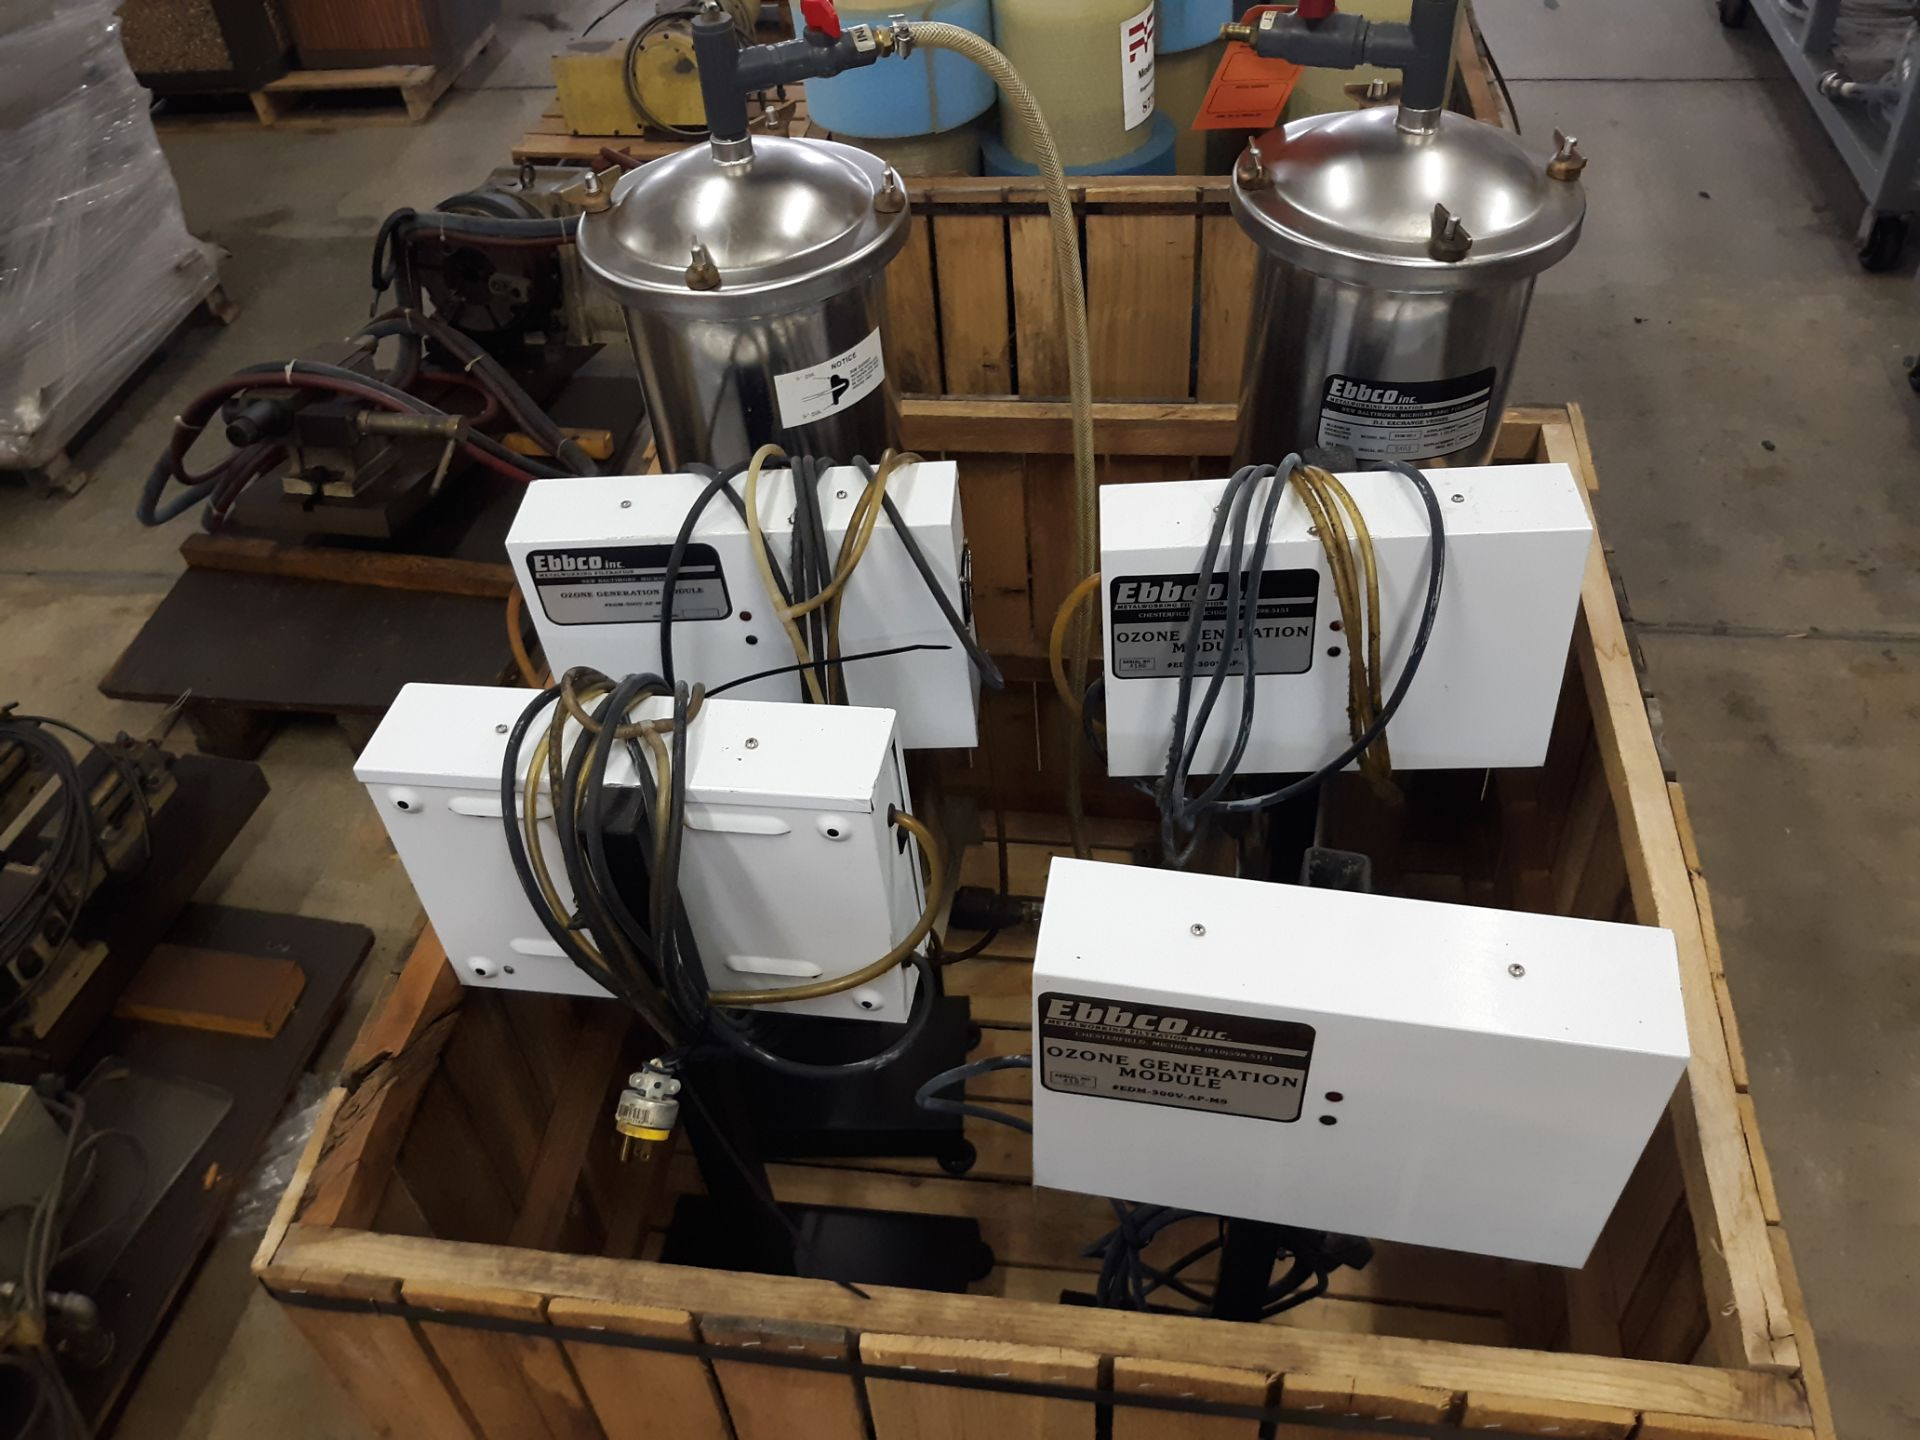 Lot 31 - (2) EBBCO D.I. EXCHANGE VESSELS ; (4) EBBCO OZONE GENERATION MODULES: RIGGING FEE: $10